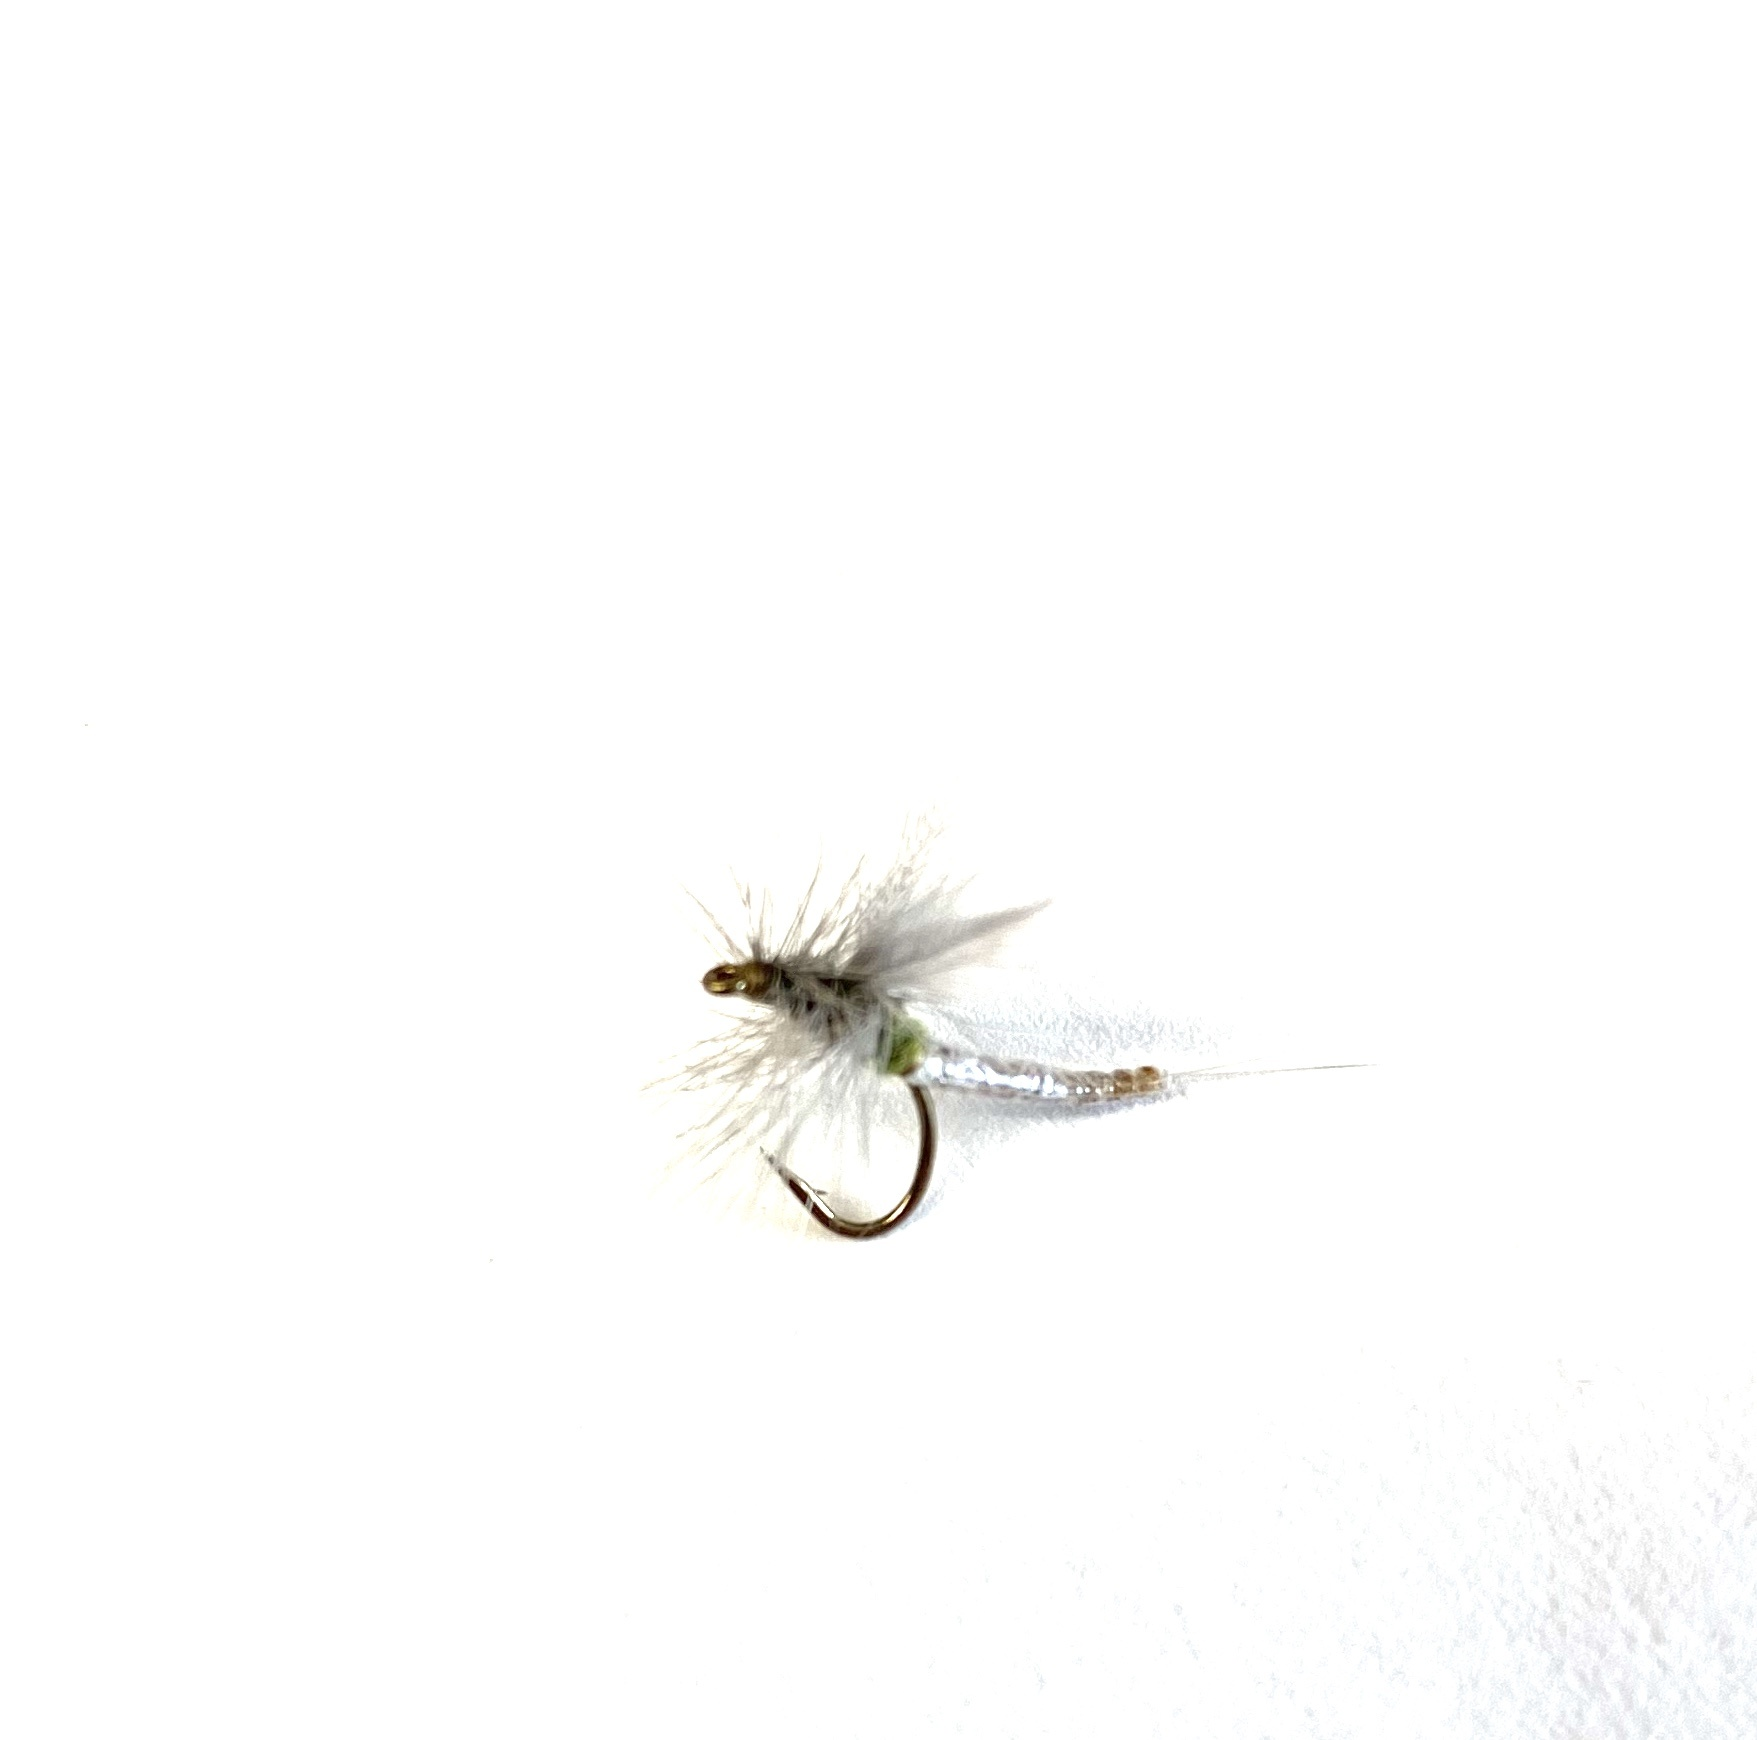 Blue Winged Olive Extended Dun